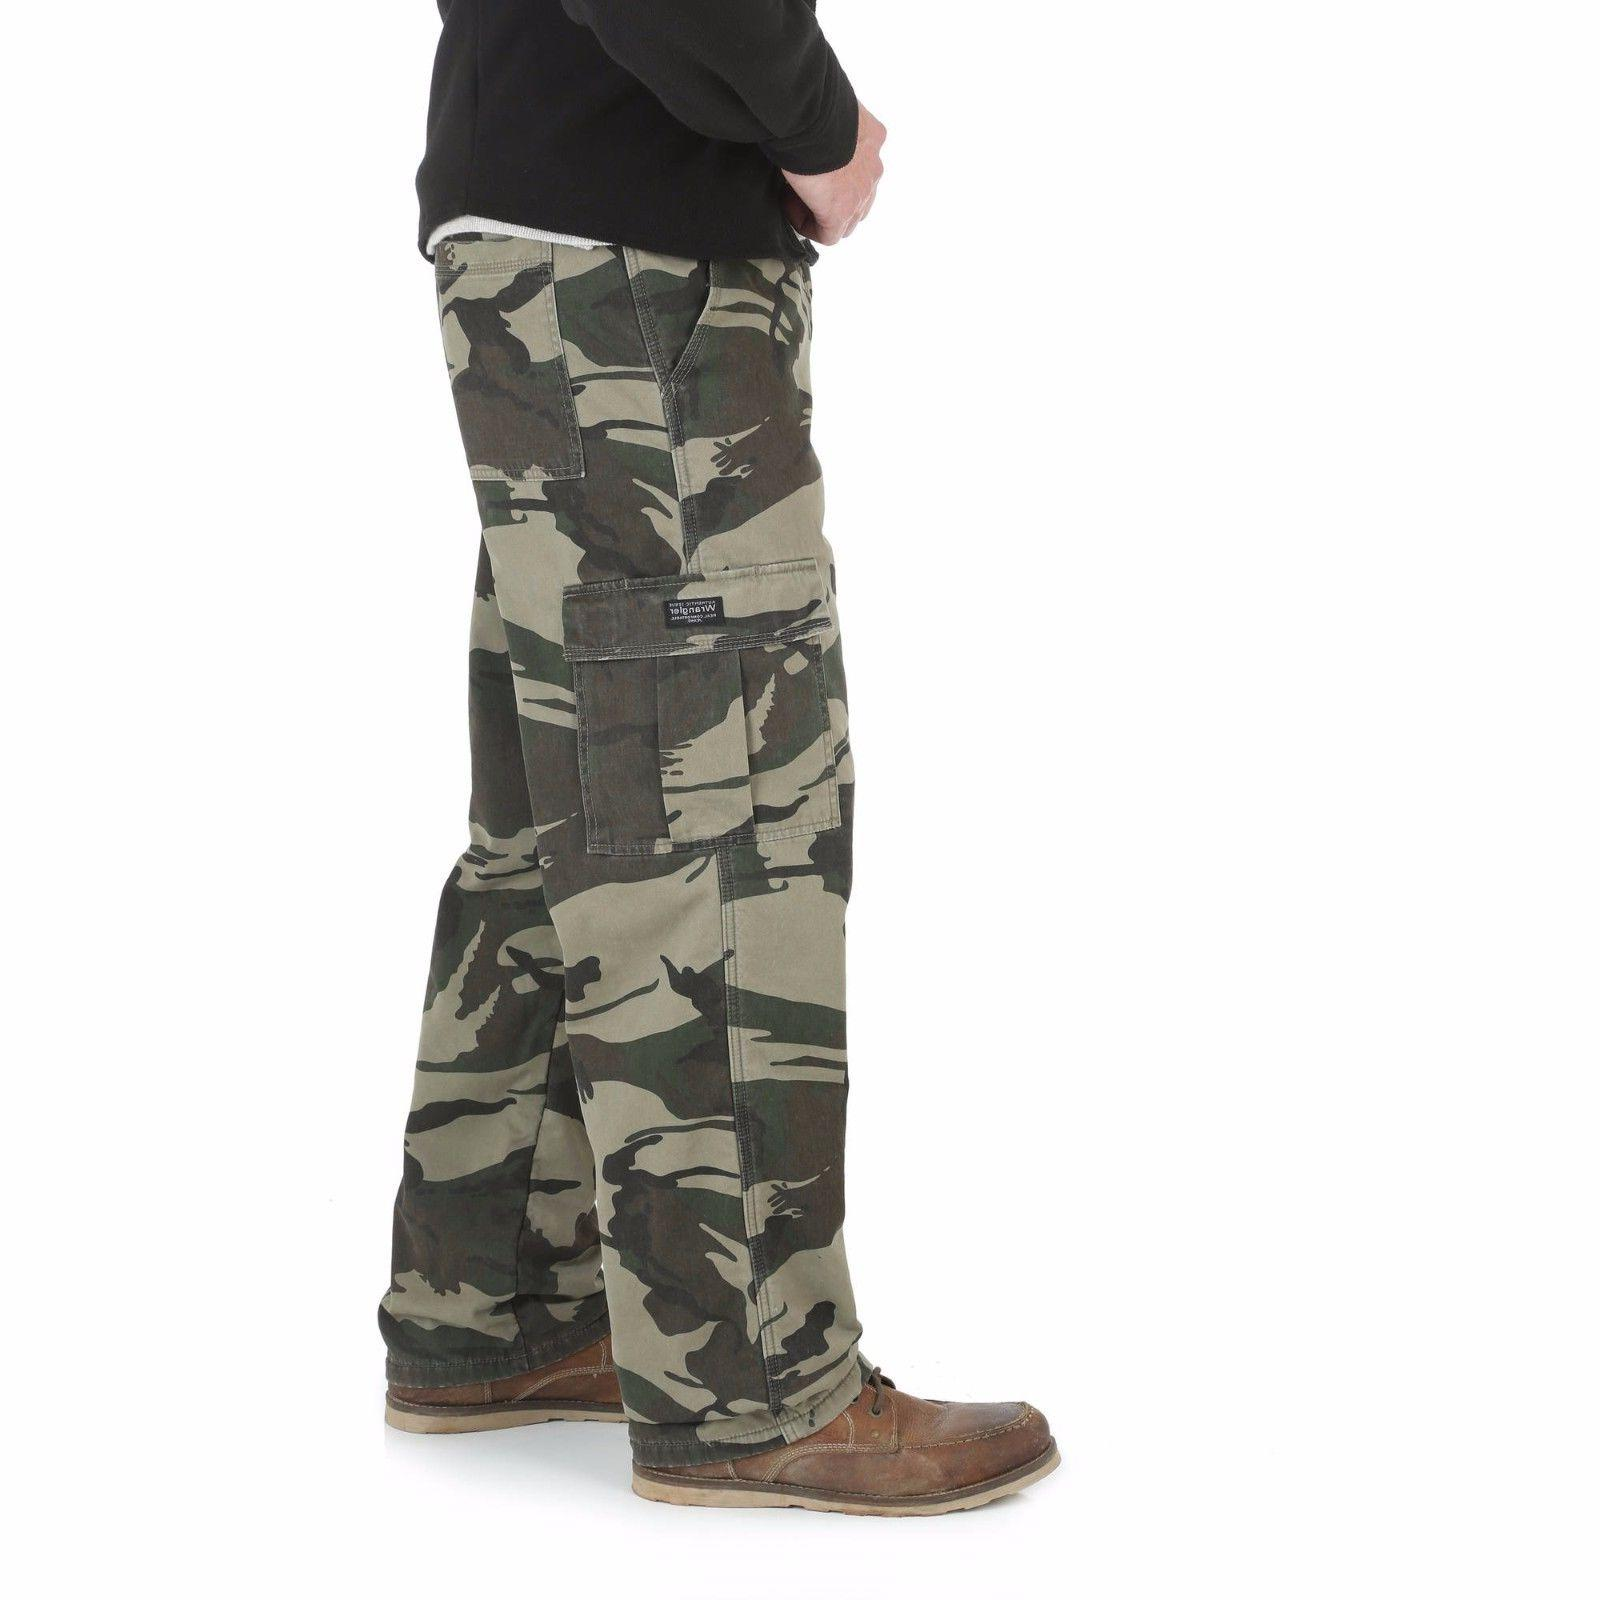 Wrangler Lined Pants Fit Work Fishing Hunting Mens